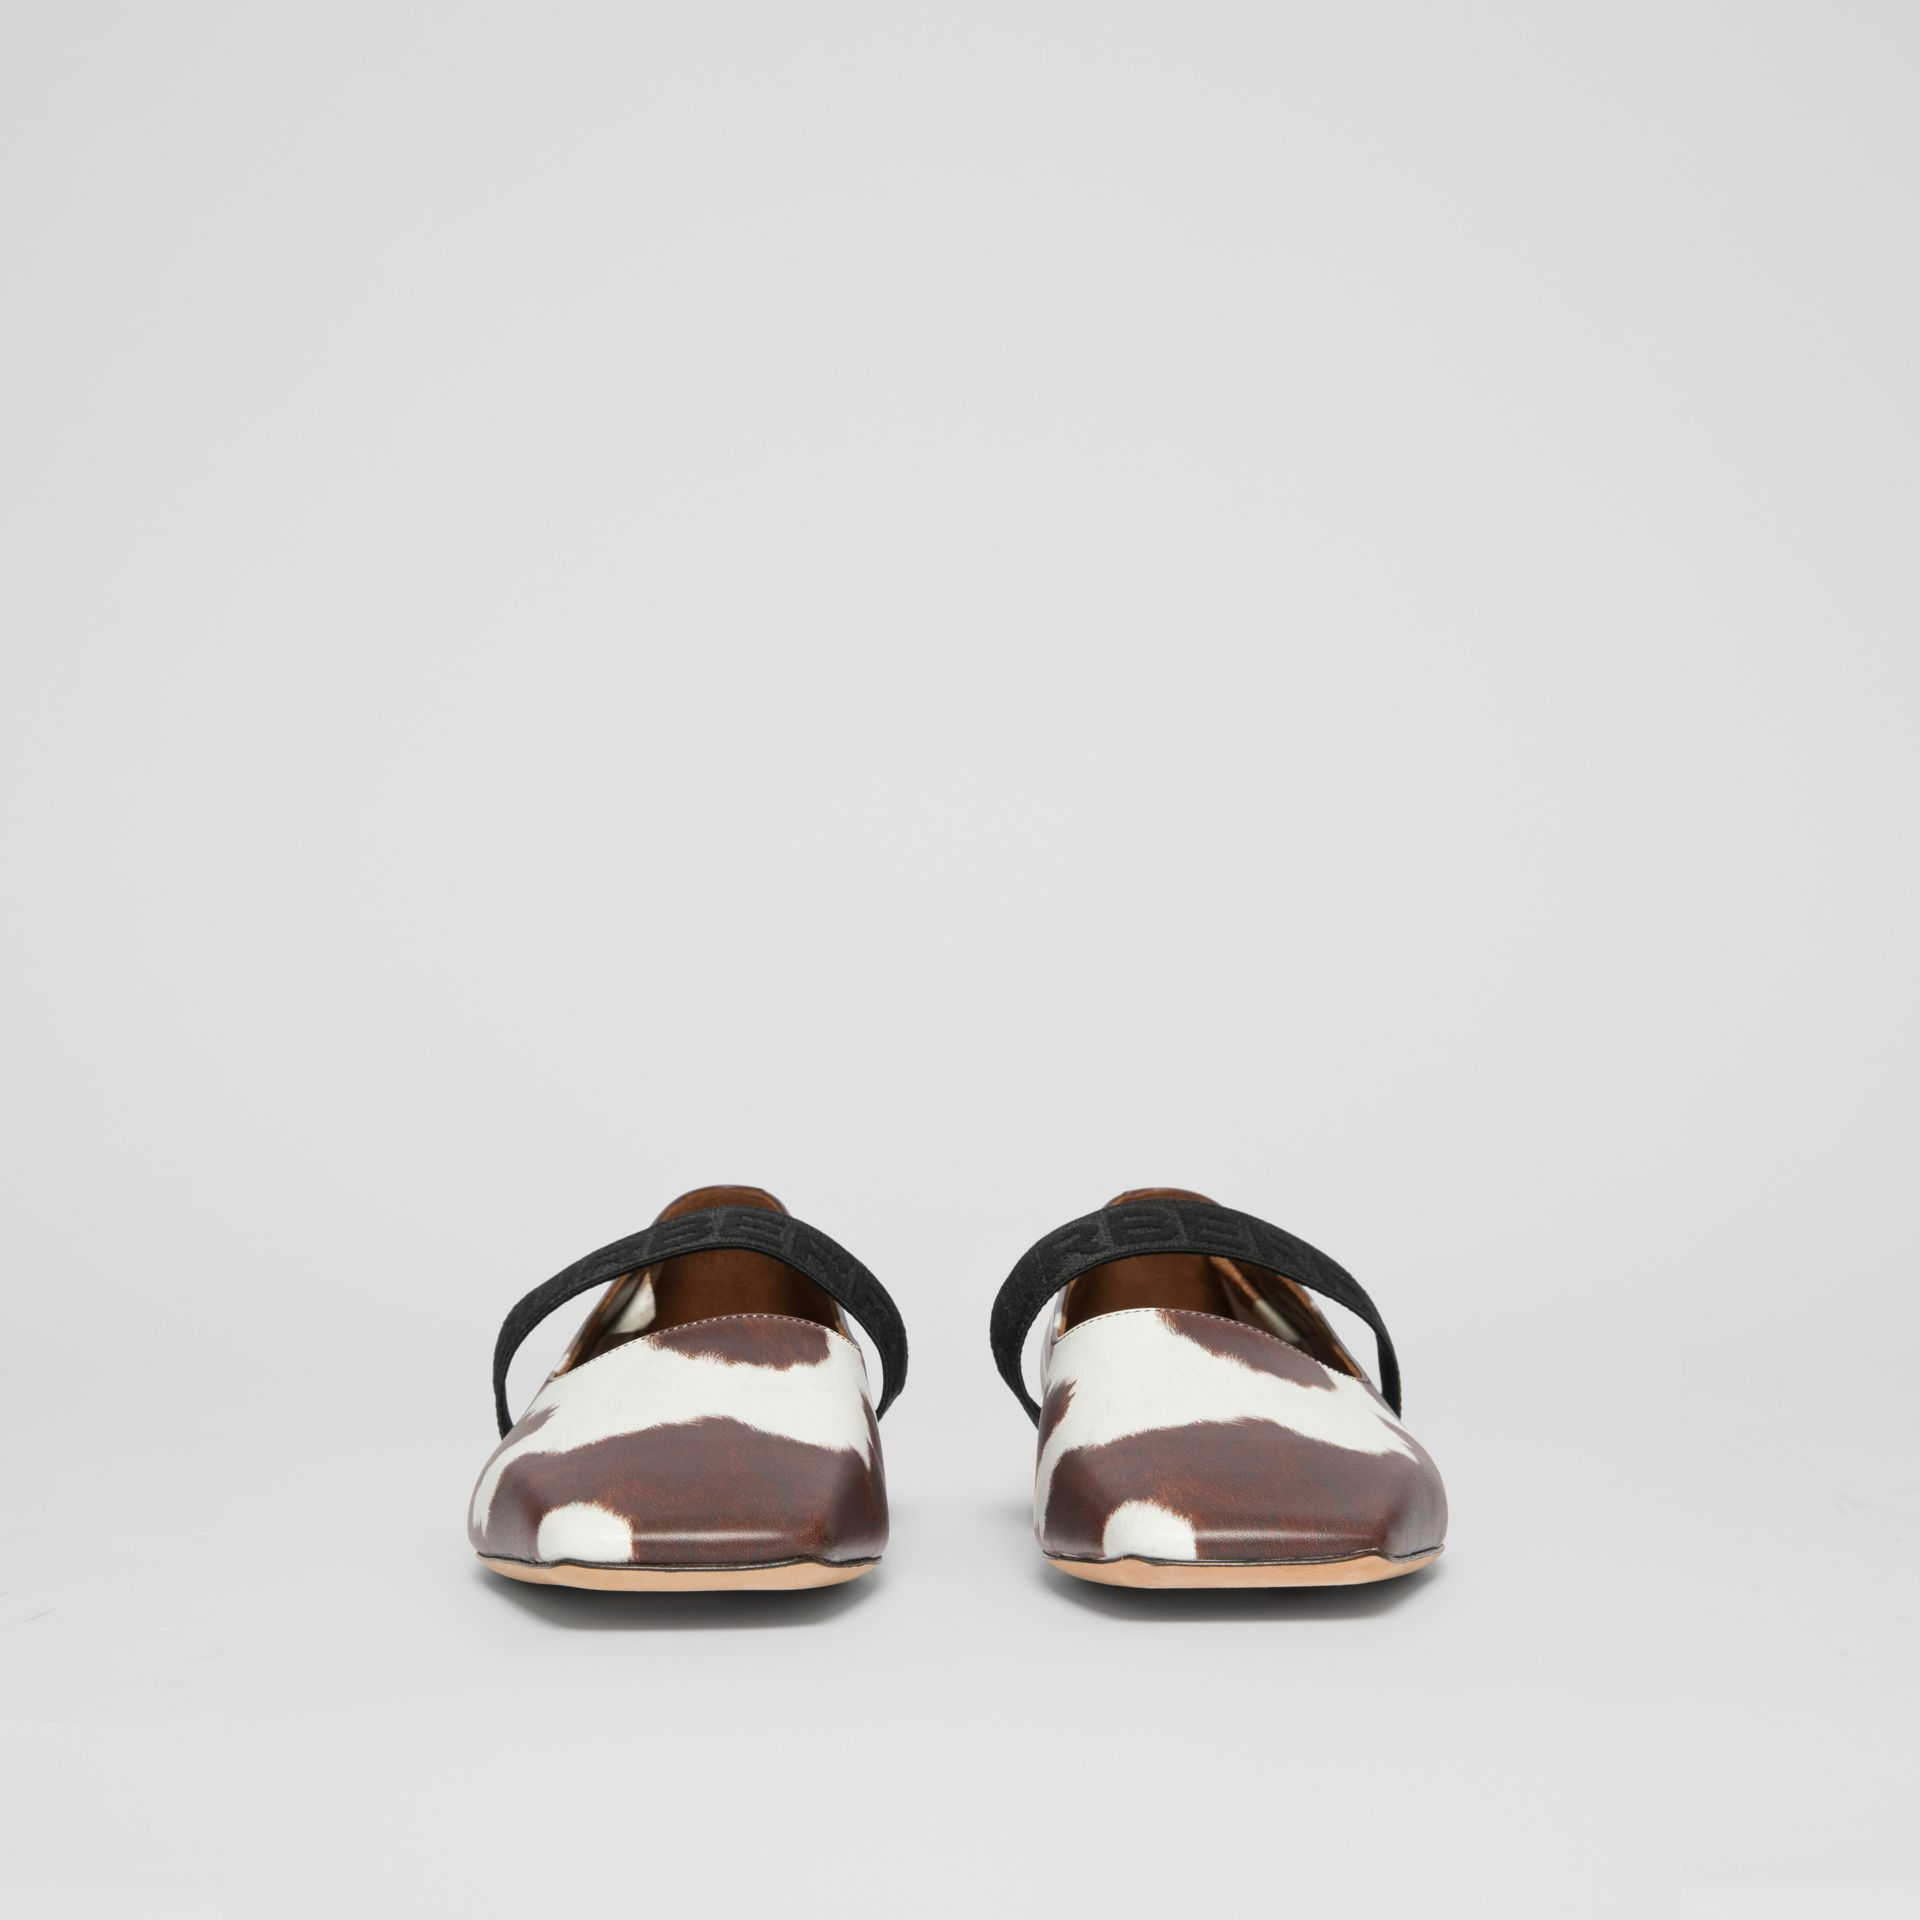 Logo Detail Cow Print Leather Flats - Women | Burberry United States - gallery image 3